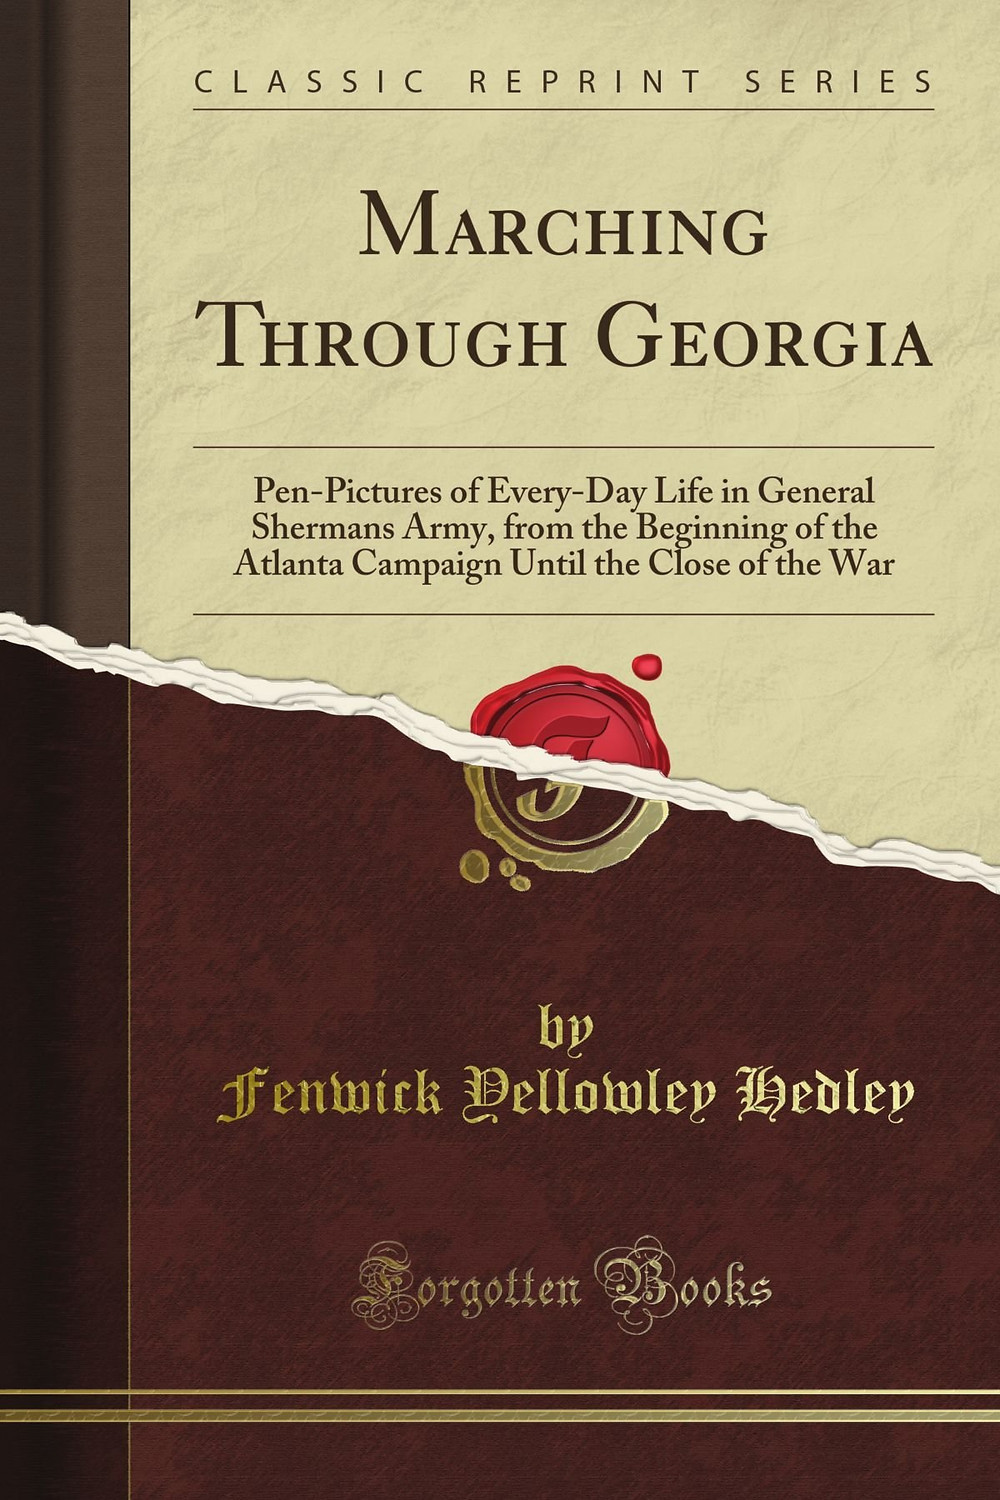 American Civil War Round Table UK / Book Review / Marching through Georgia